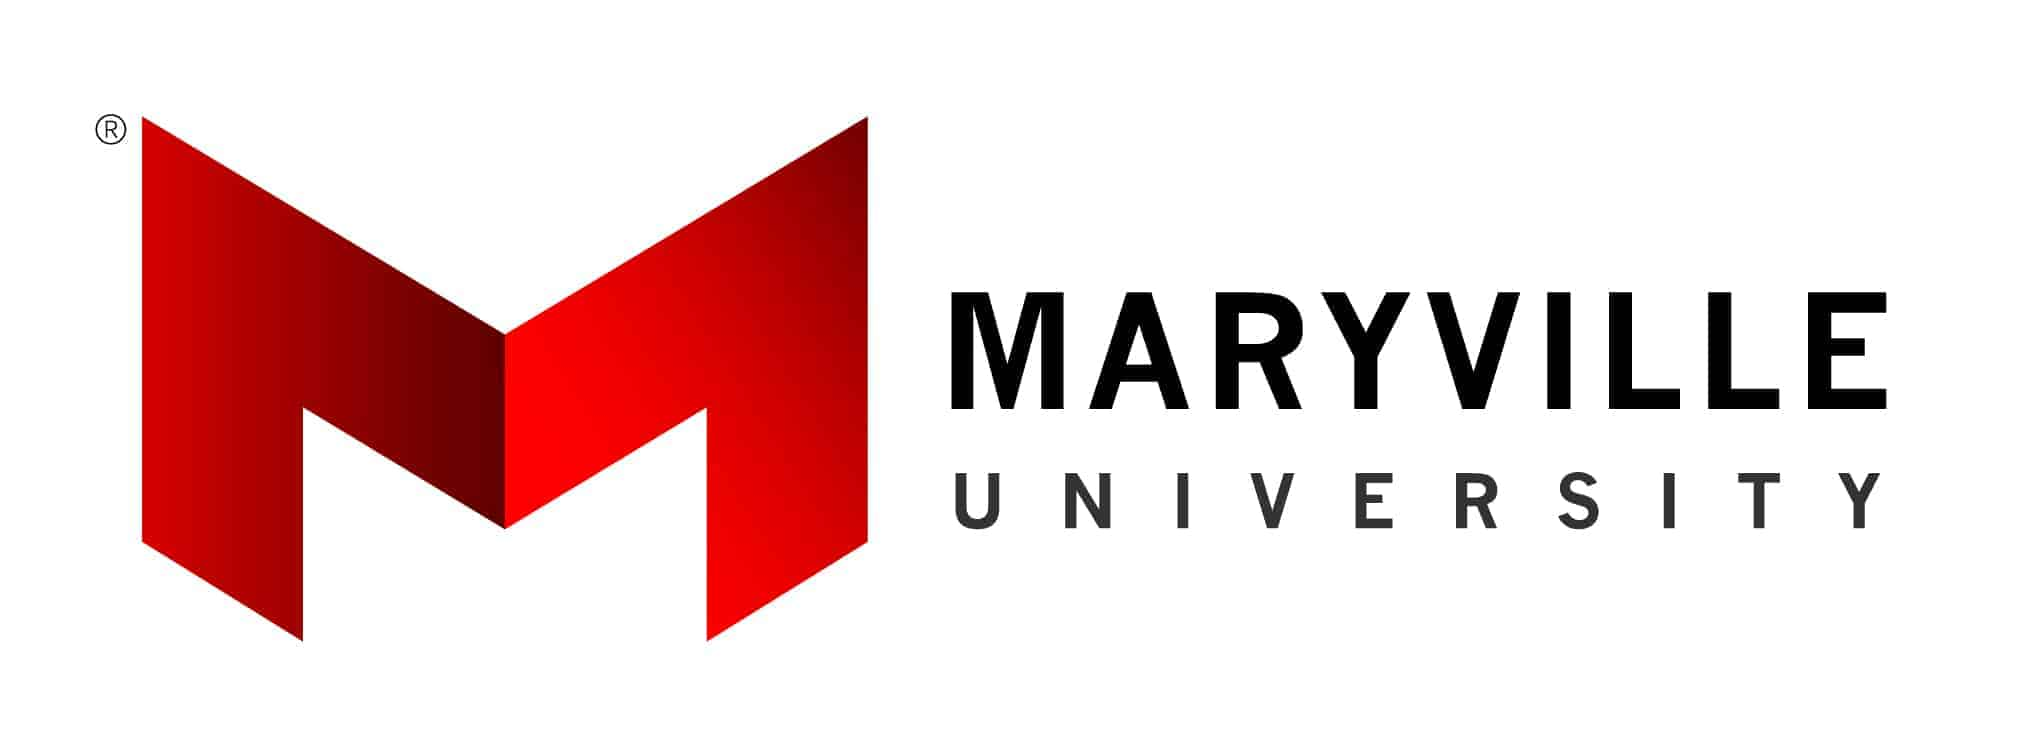 maryville university of saint louis logo 7349